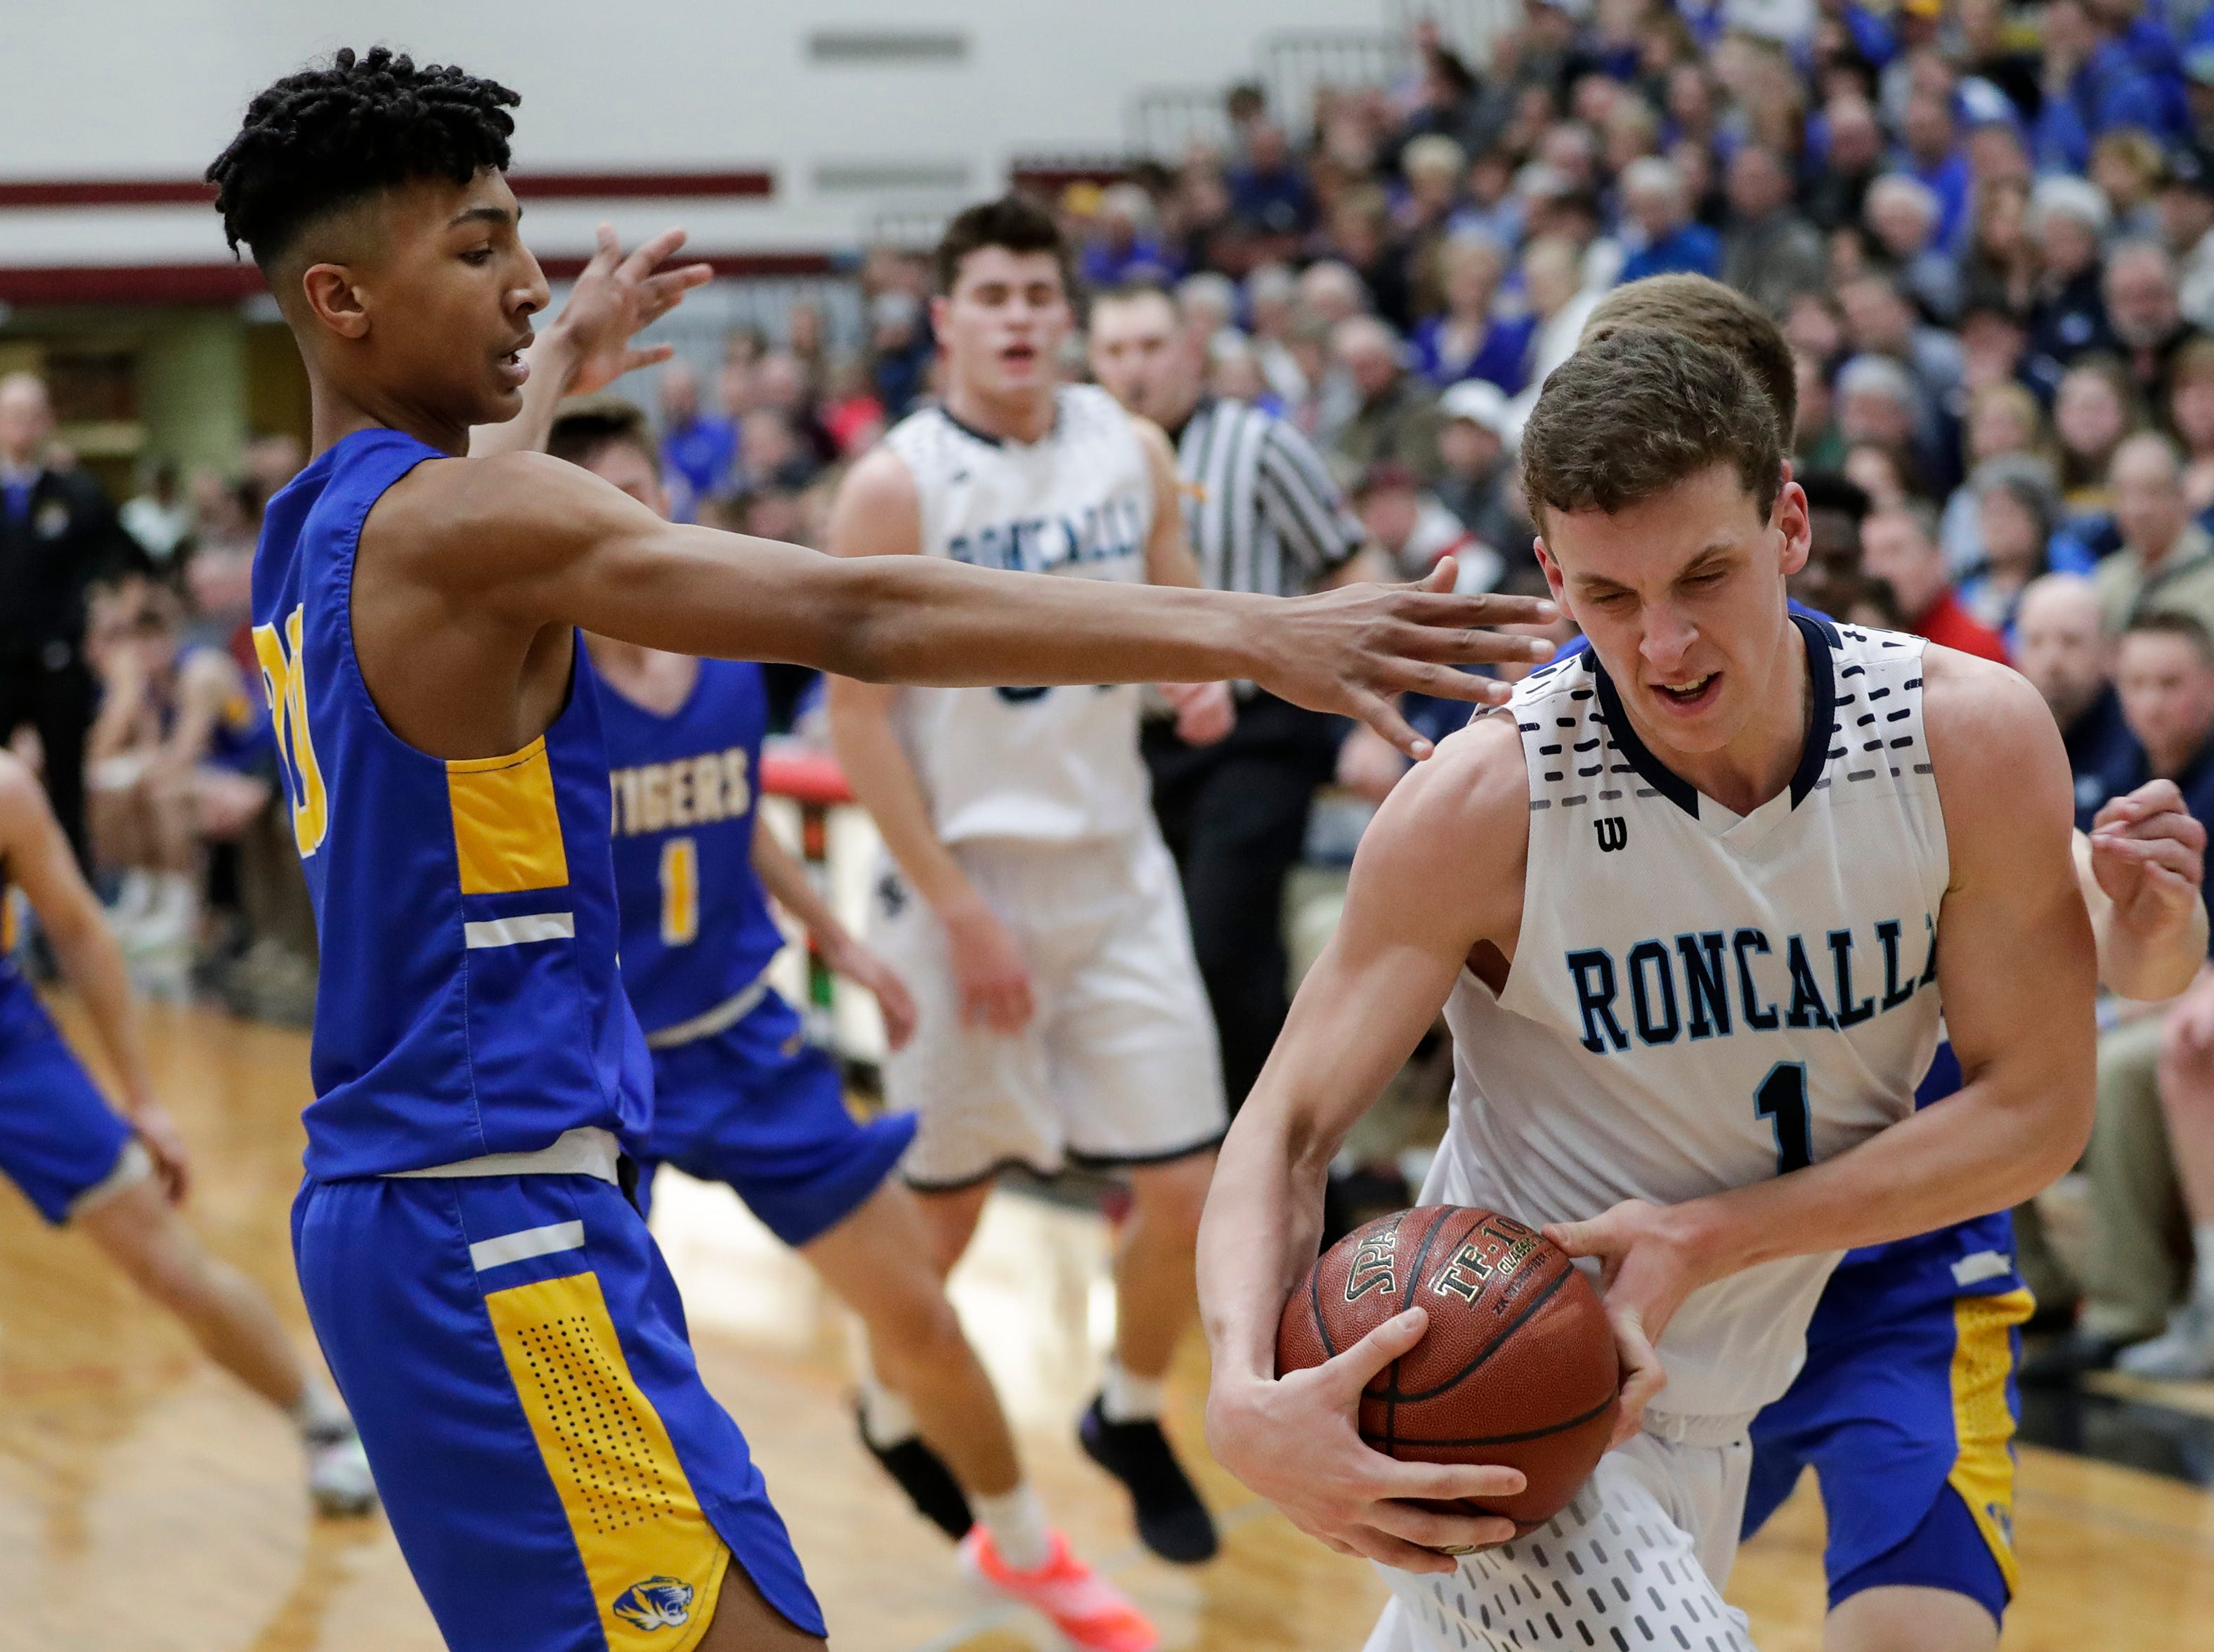 Roncalli's Daniel Burgarino (1) fights to keep control of the ball against Howards Grove during a WIAA Division 4 sectional semifinal at New Holstein High School Thursday, March 7, 2019, in New Holstein, Wis. Joshua Clark/USA TODAY NETWORK-Wisconsin